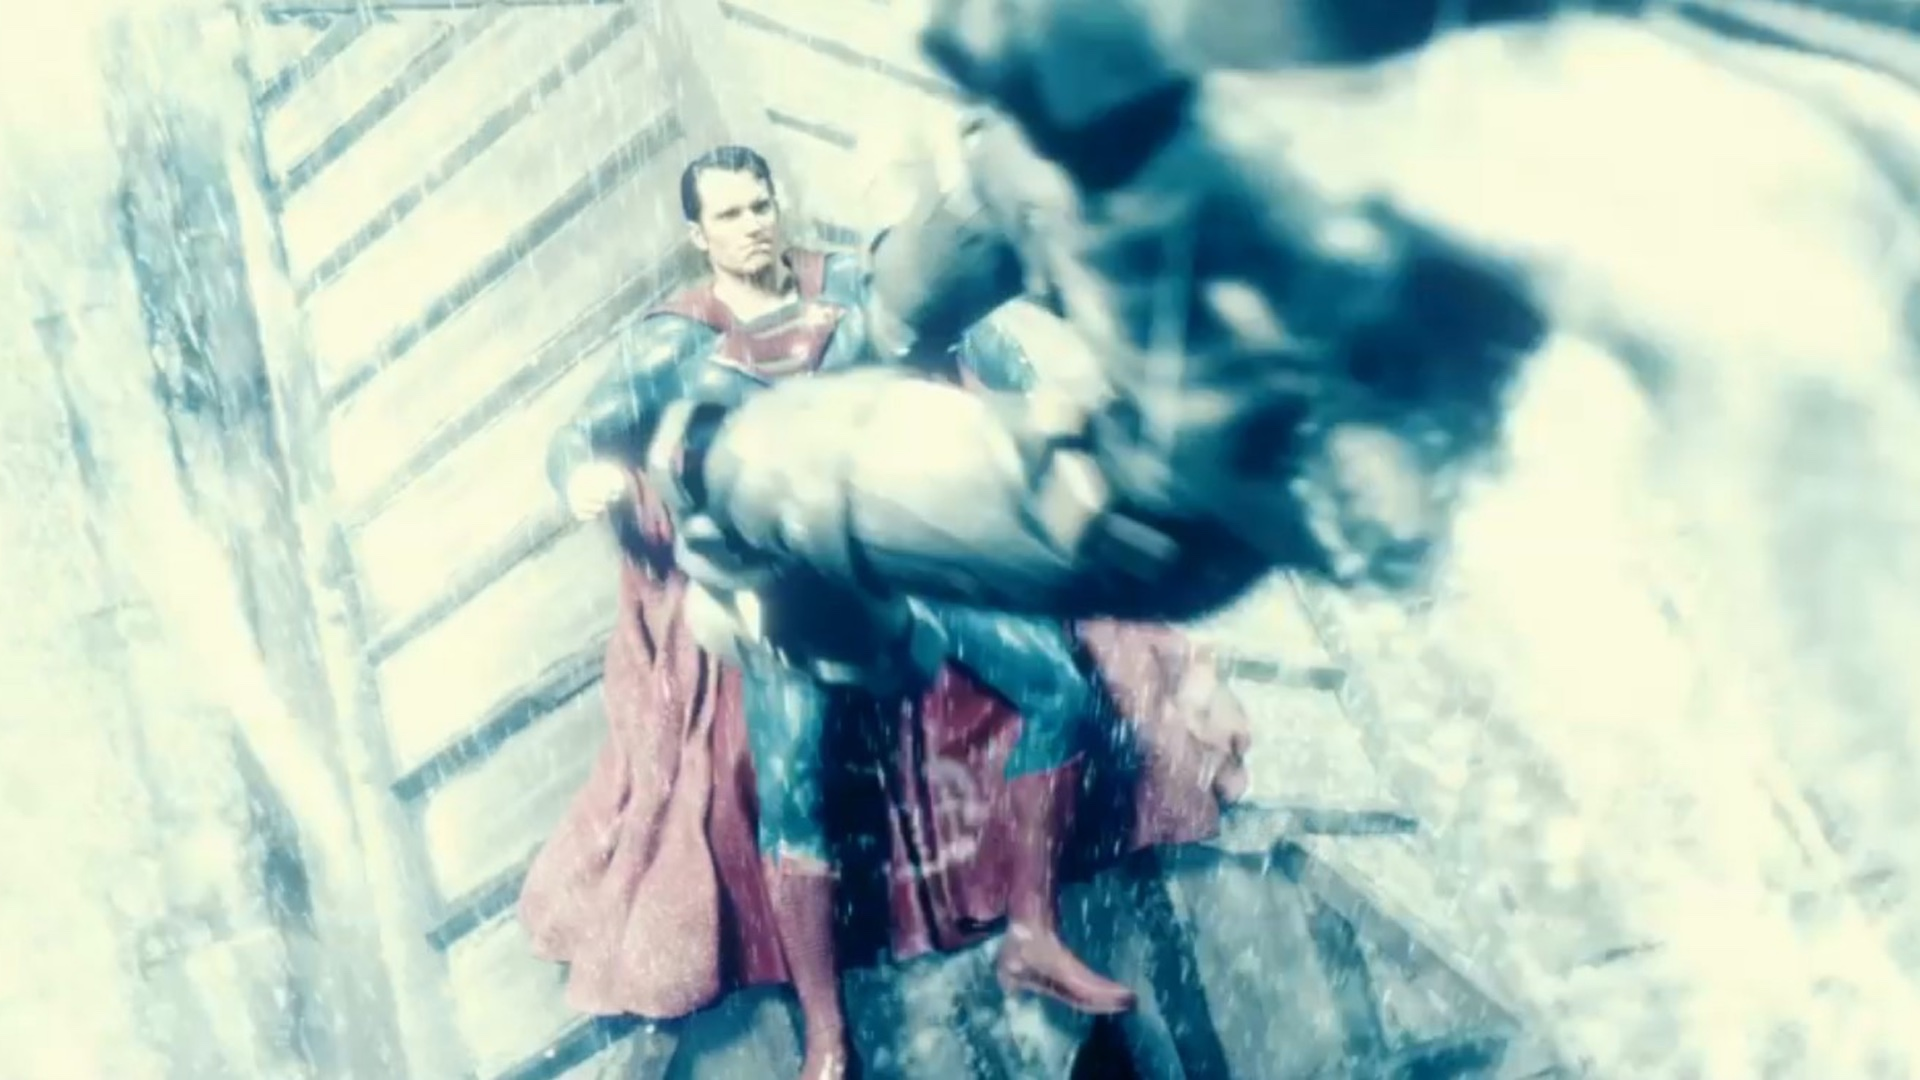 batman-v-superman-henry-cavill-and-ben-affleck-talk-about-their-roles-and-costumes